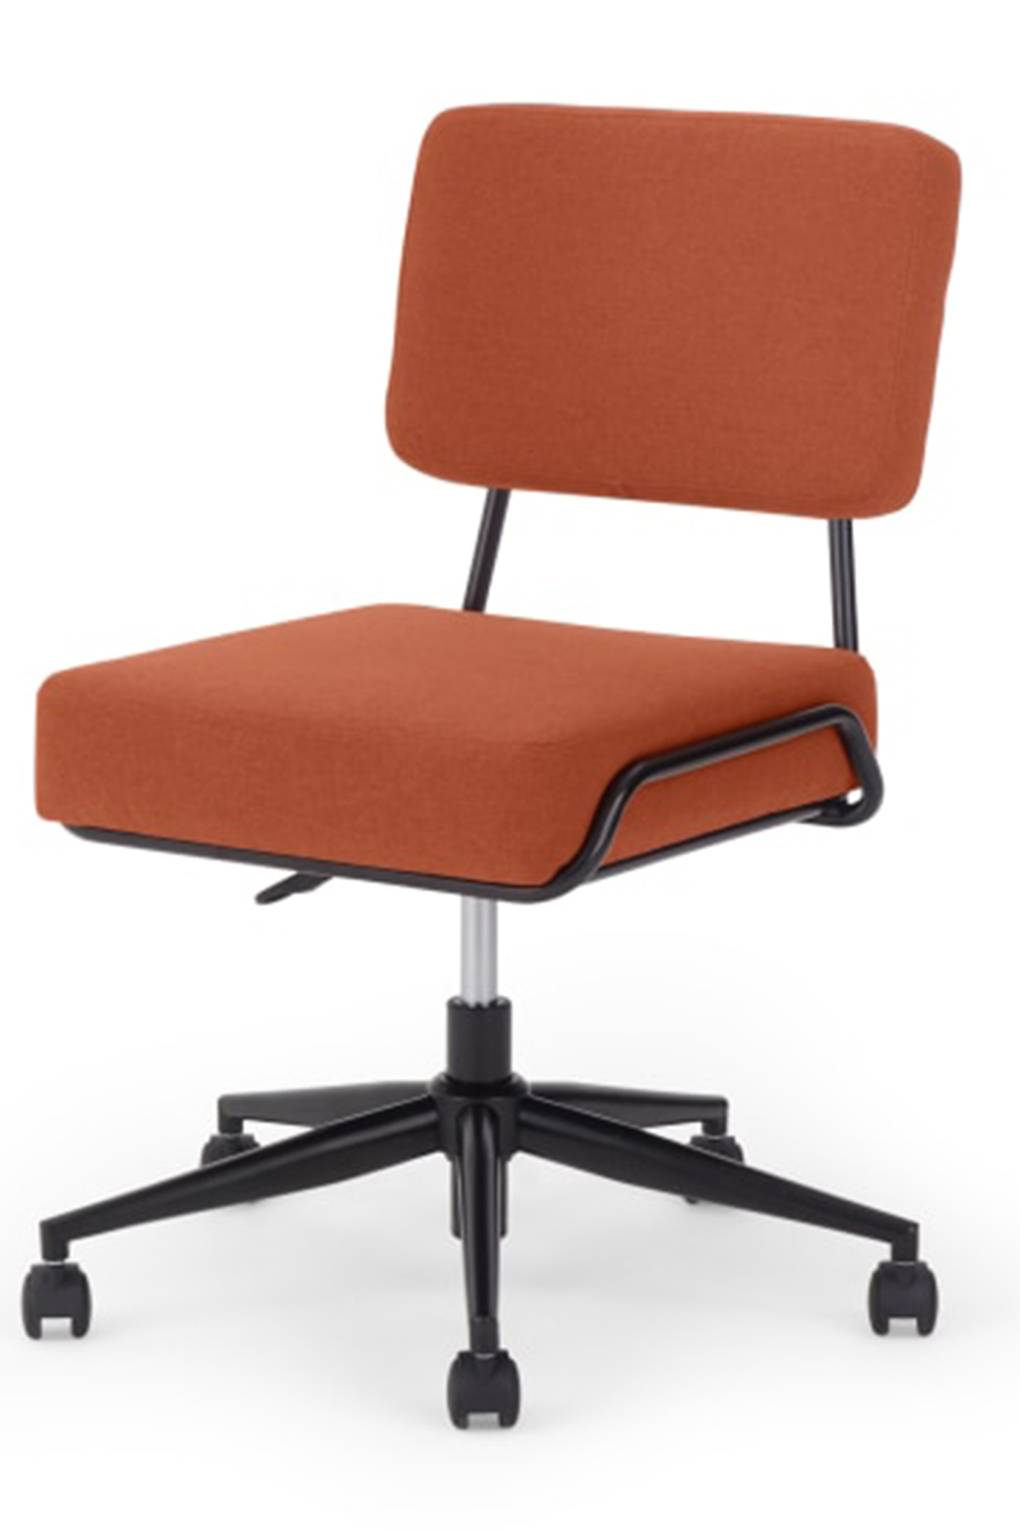 Image of: 13 Best Office Chairs Still In Stock Desk Chairs For Wfh Glamour Uk